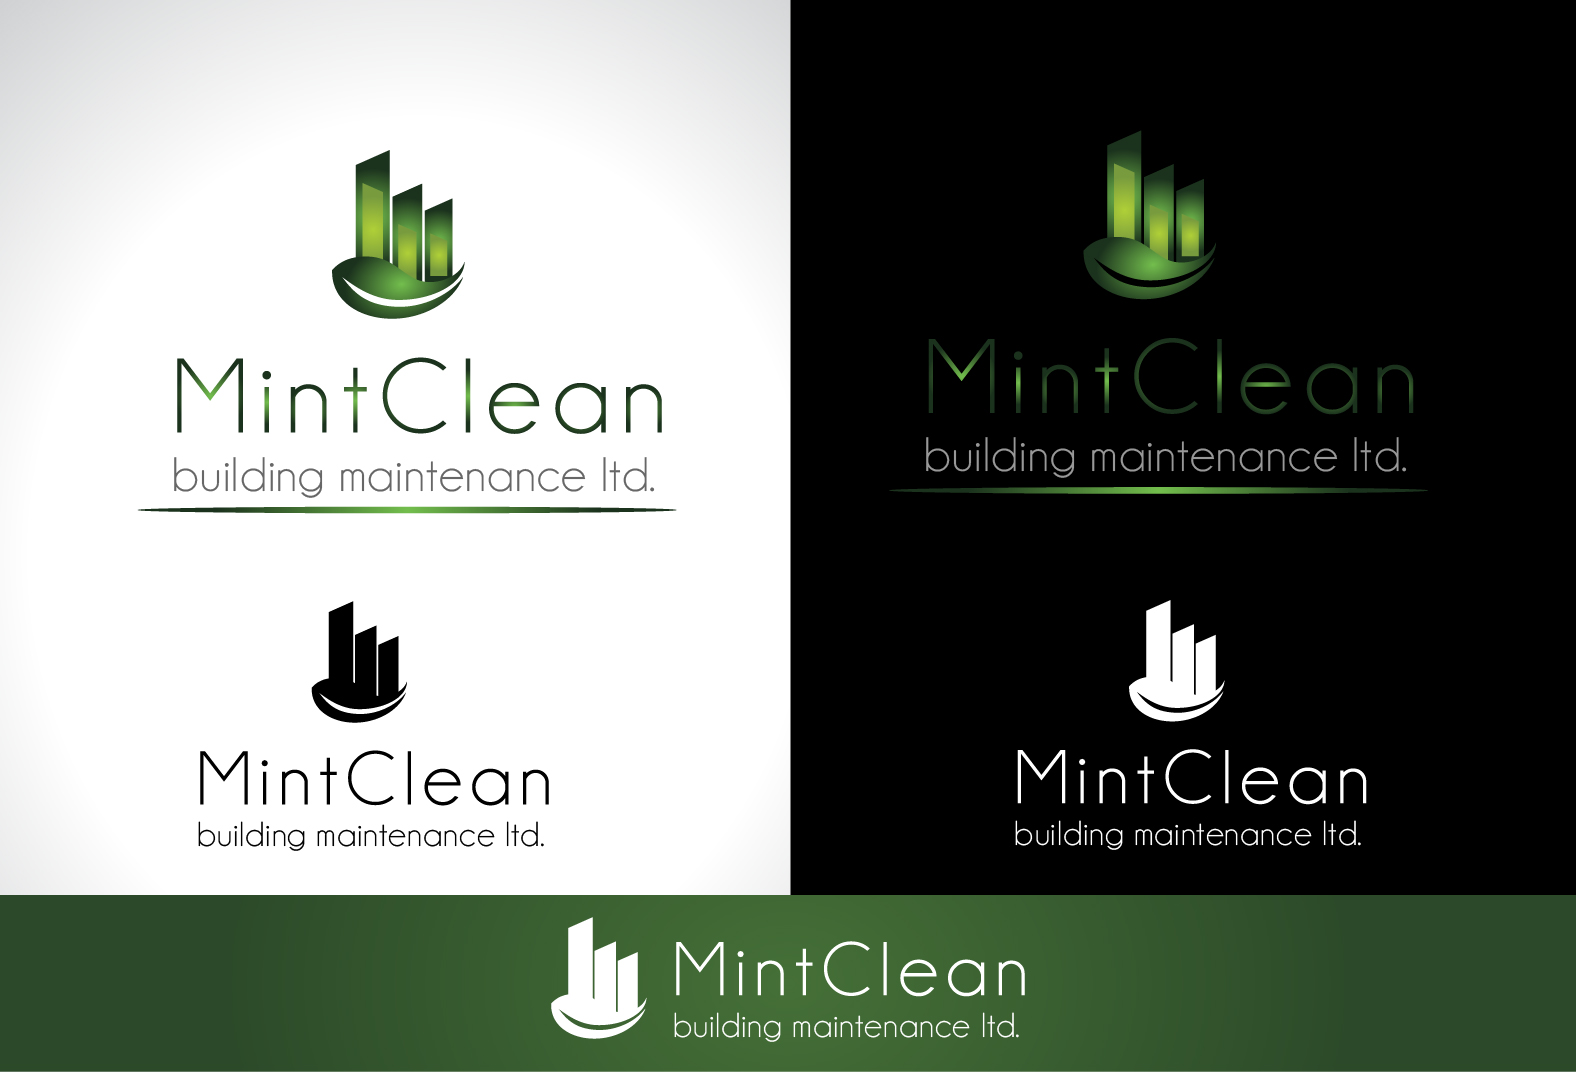 Logo Design by Darina Dimitrova - Entry No. 111 in the Logo Design Contest MintClean Building Maintenance Ltd. Logo Design.